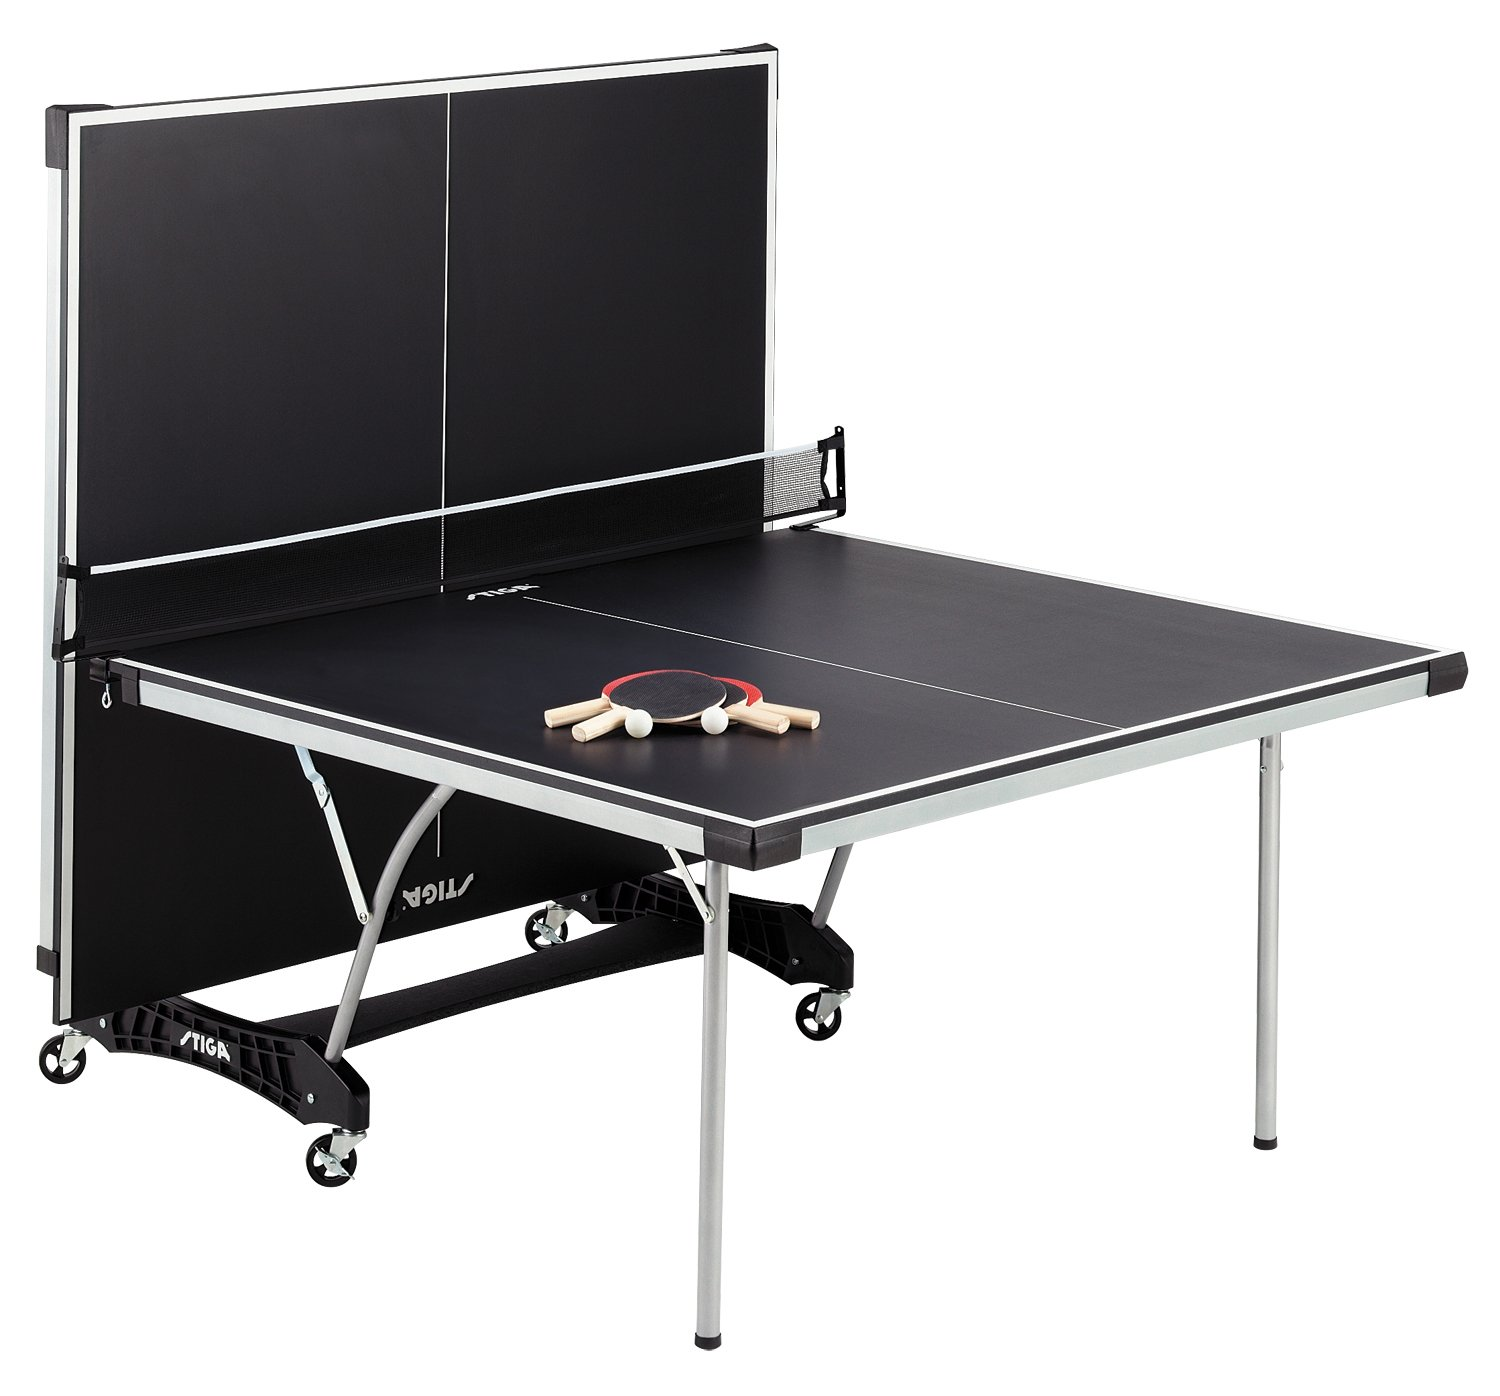 Amazon.com : STIGA Daytona Table Tennis Table : Stiga Datona Ping Pong Table  : Sports U0026 Outdoors